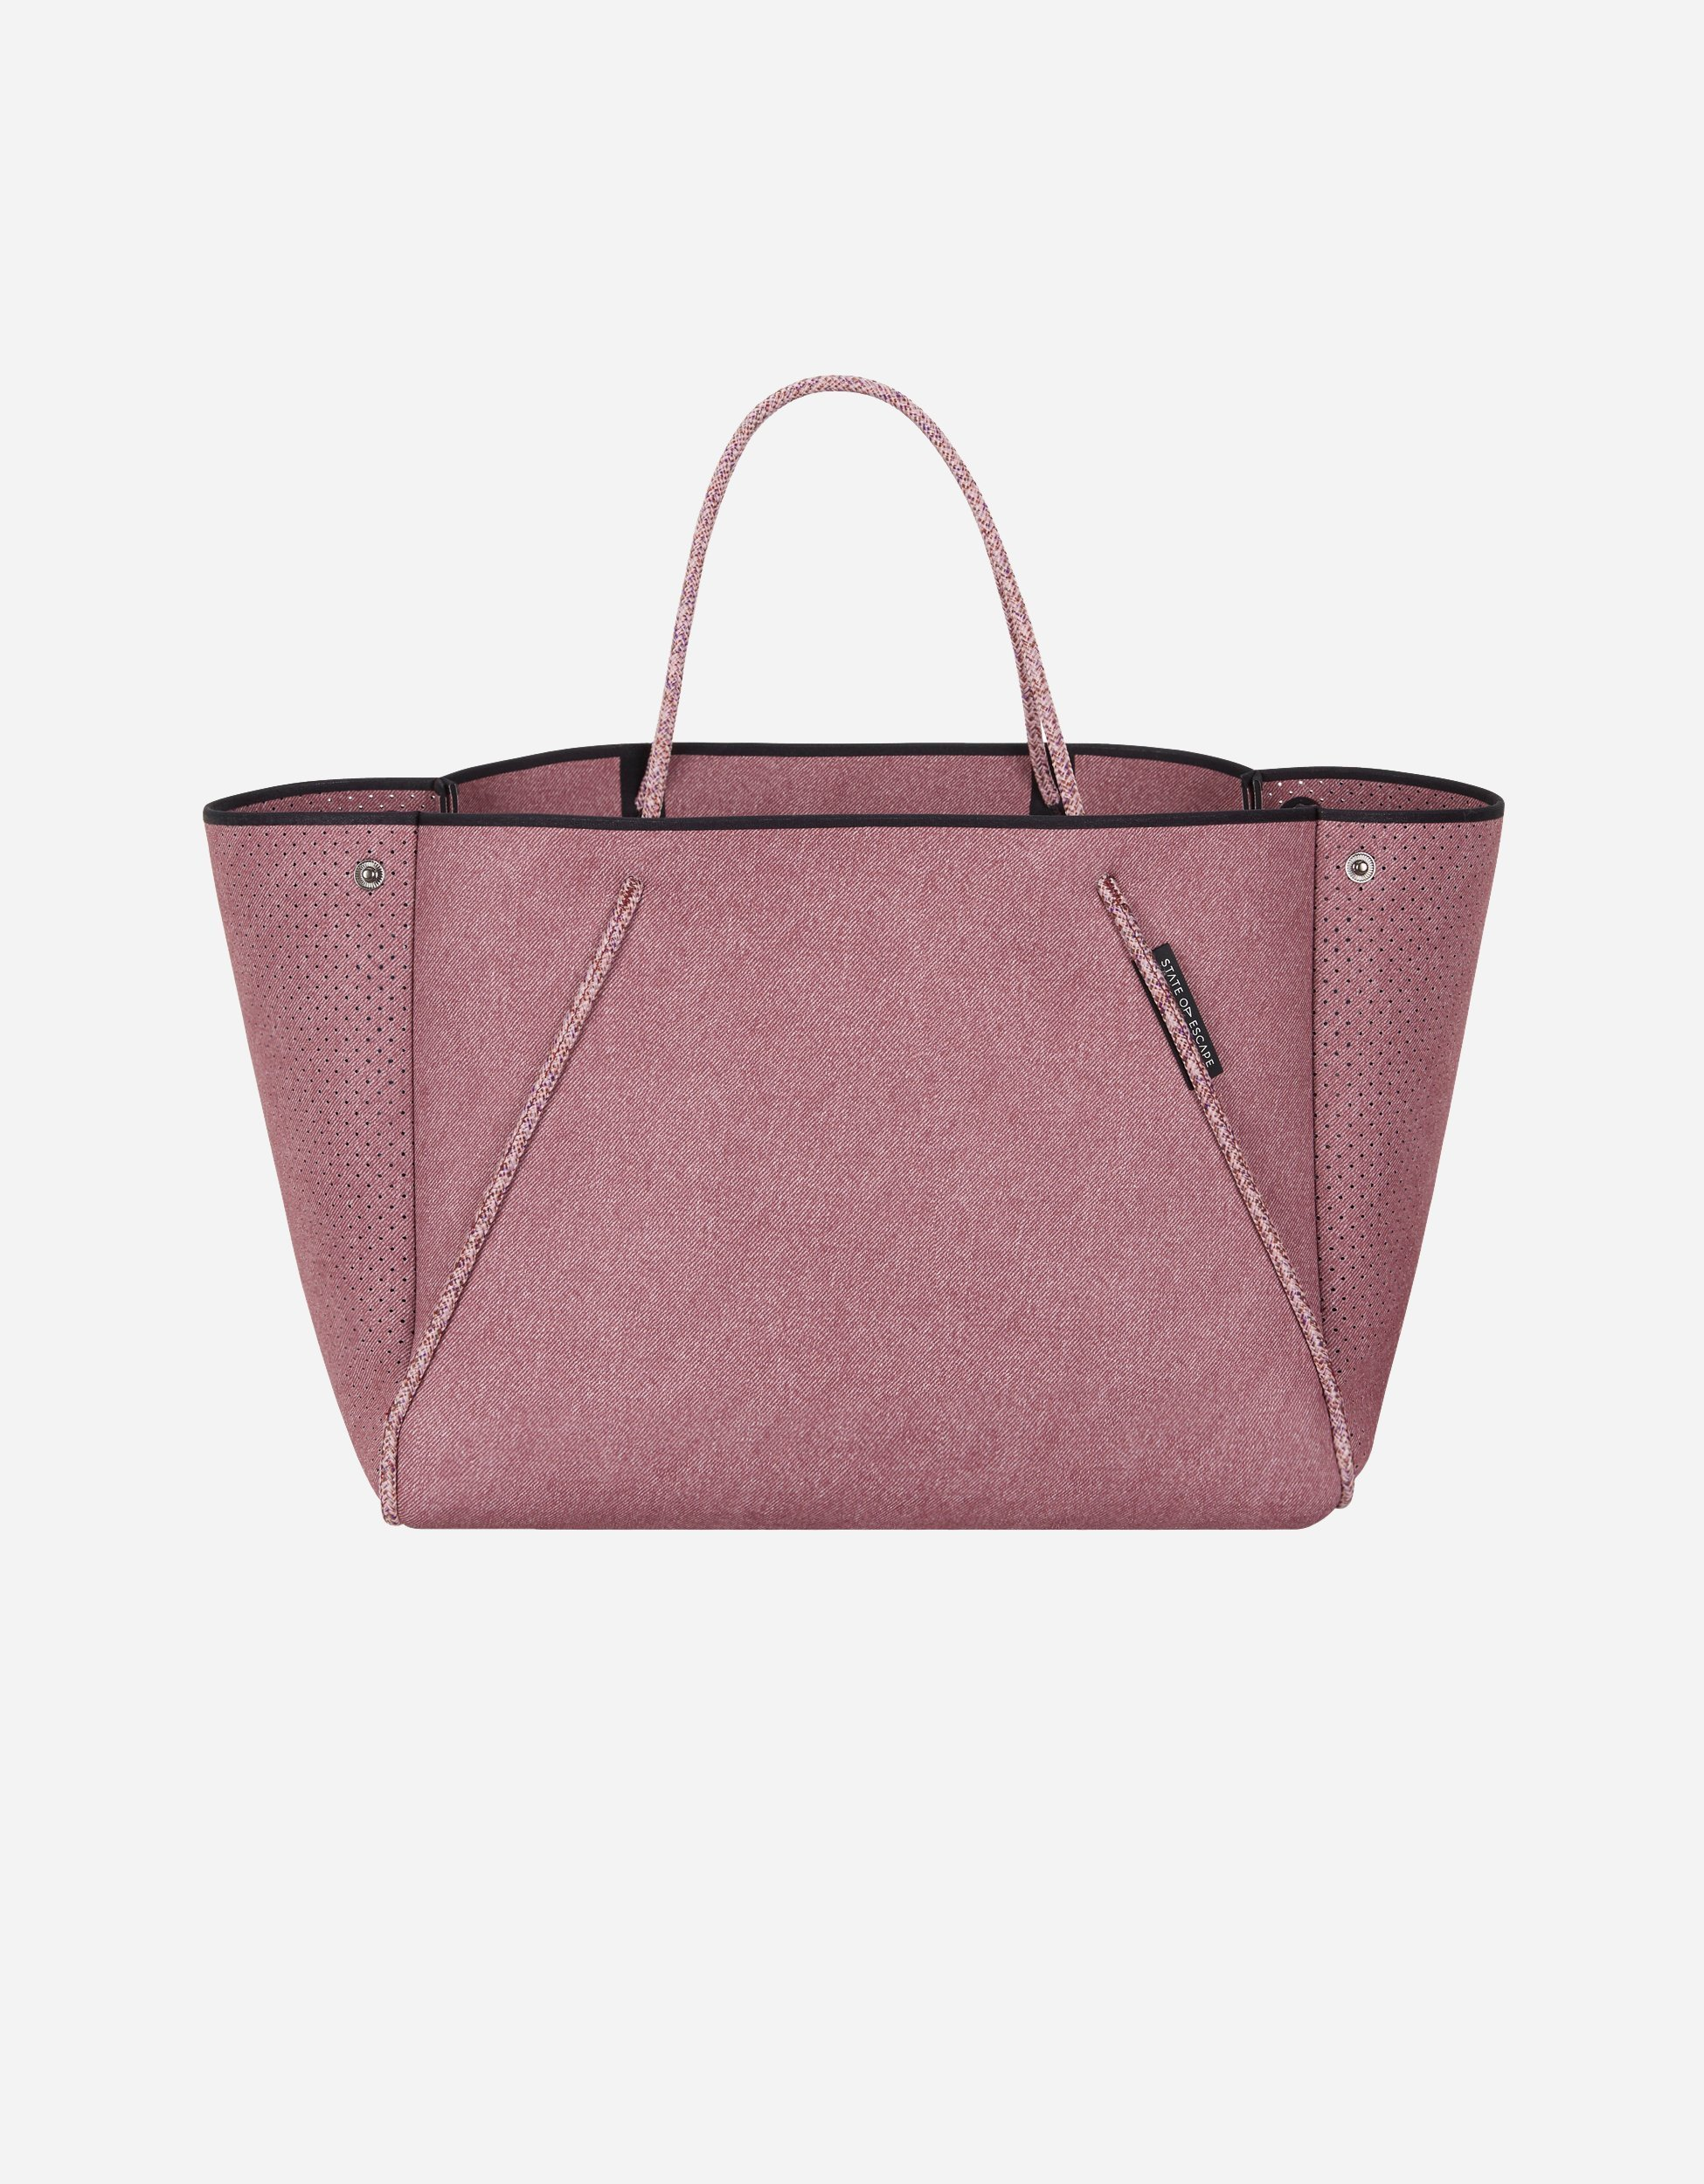 【state of escape】Guise tote bag(washed rose denim print) (State of Escape/トートバッグ) 46083217